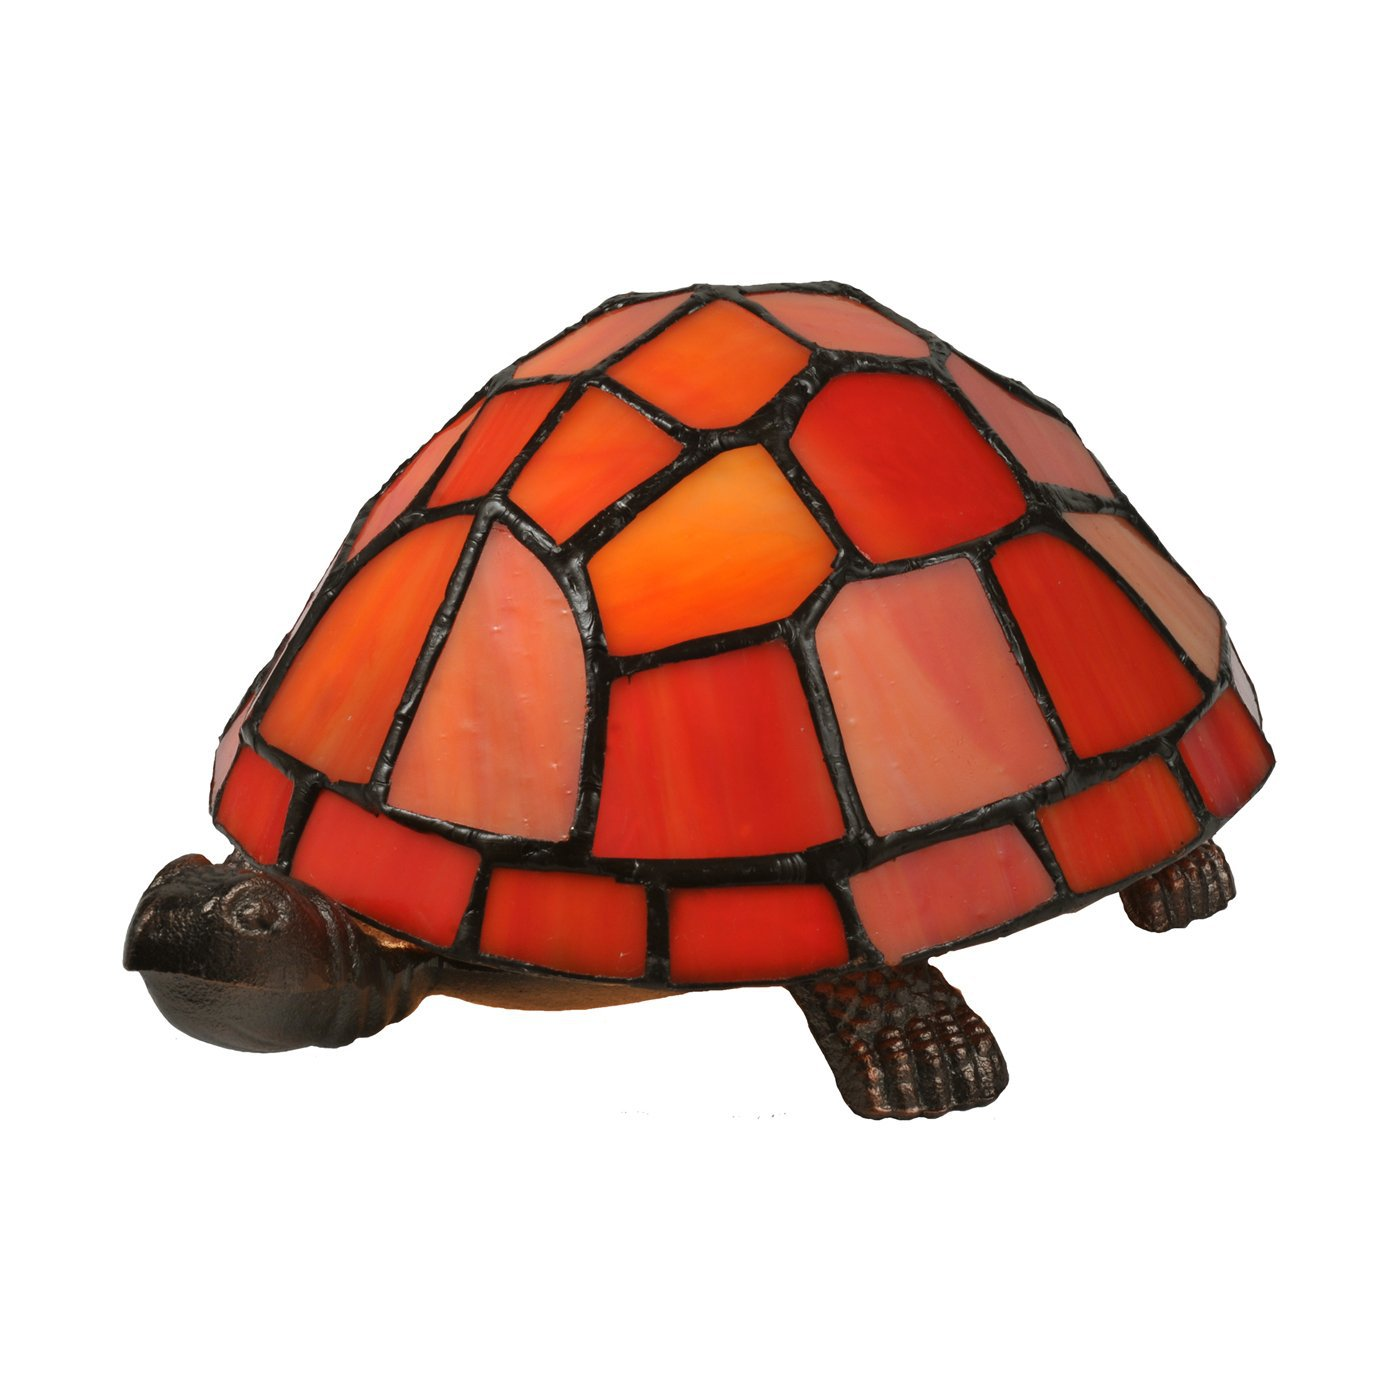 meyda tiffany turtle accent table lamp atg lamps rectangle glass coffee girls desk blue side elephant sculpture ethan allen dining room chairs ikea high top counter height